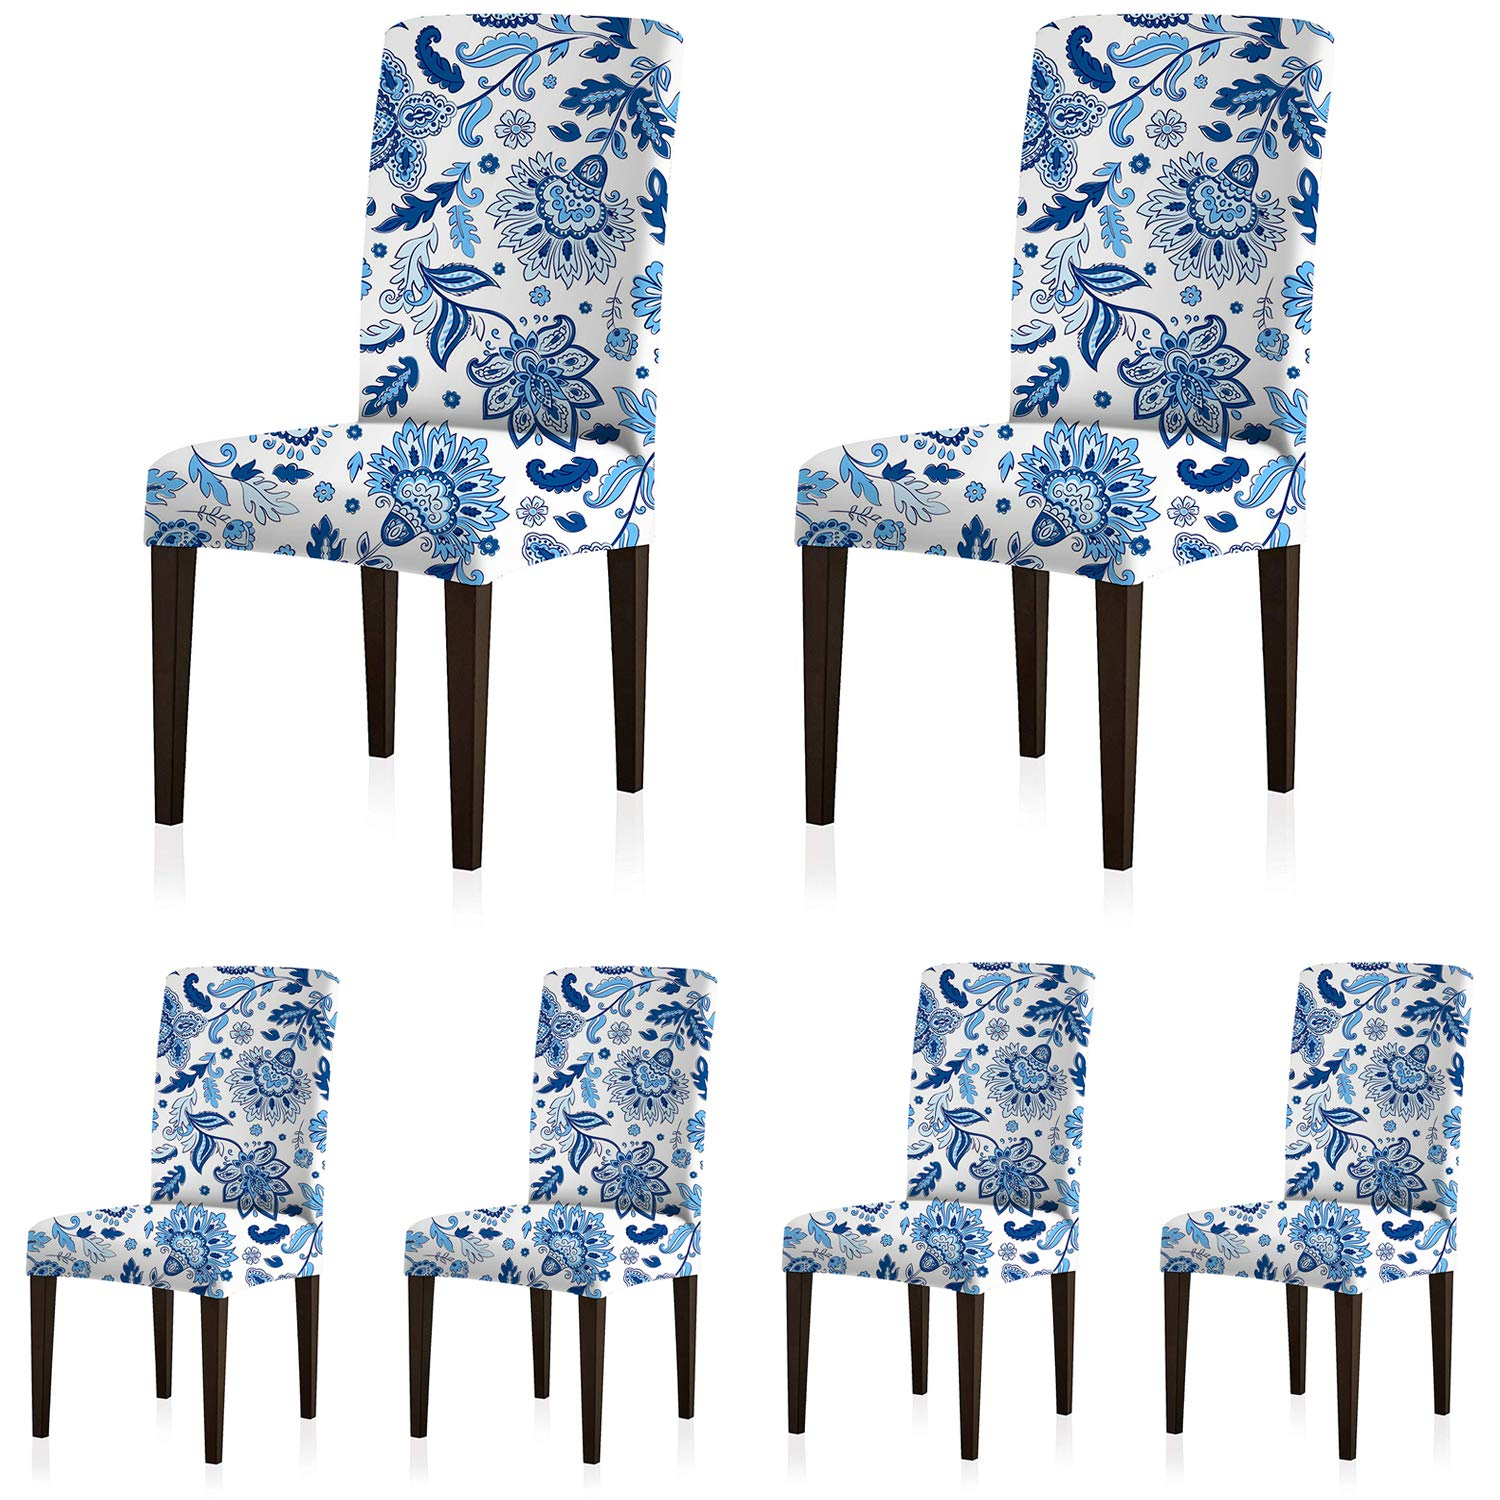 ColorBird Paisley Flower Spandex Chair Slipcovers Removable Universal Stretch Elastic Chair Protector Covers for Dining Room, Restaurant, Hotel, Banquet, Ceremony (Set of 6, Blue/White)